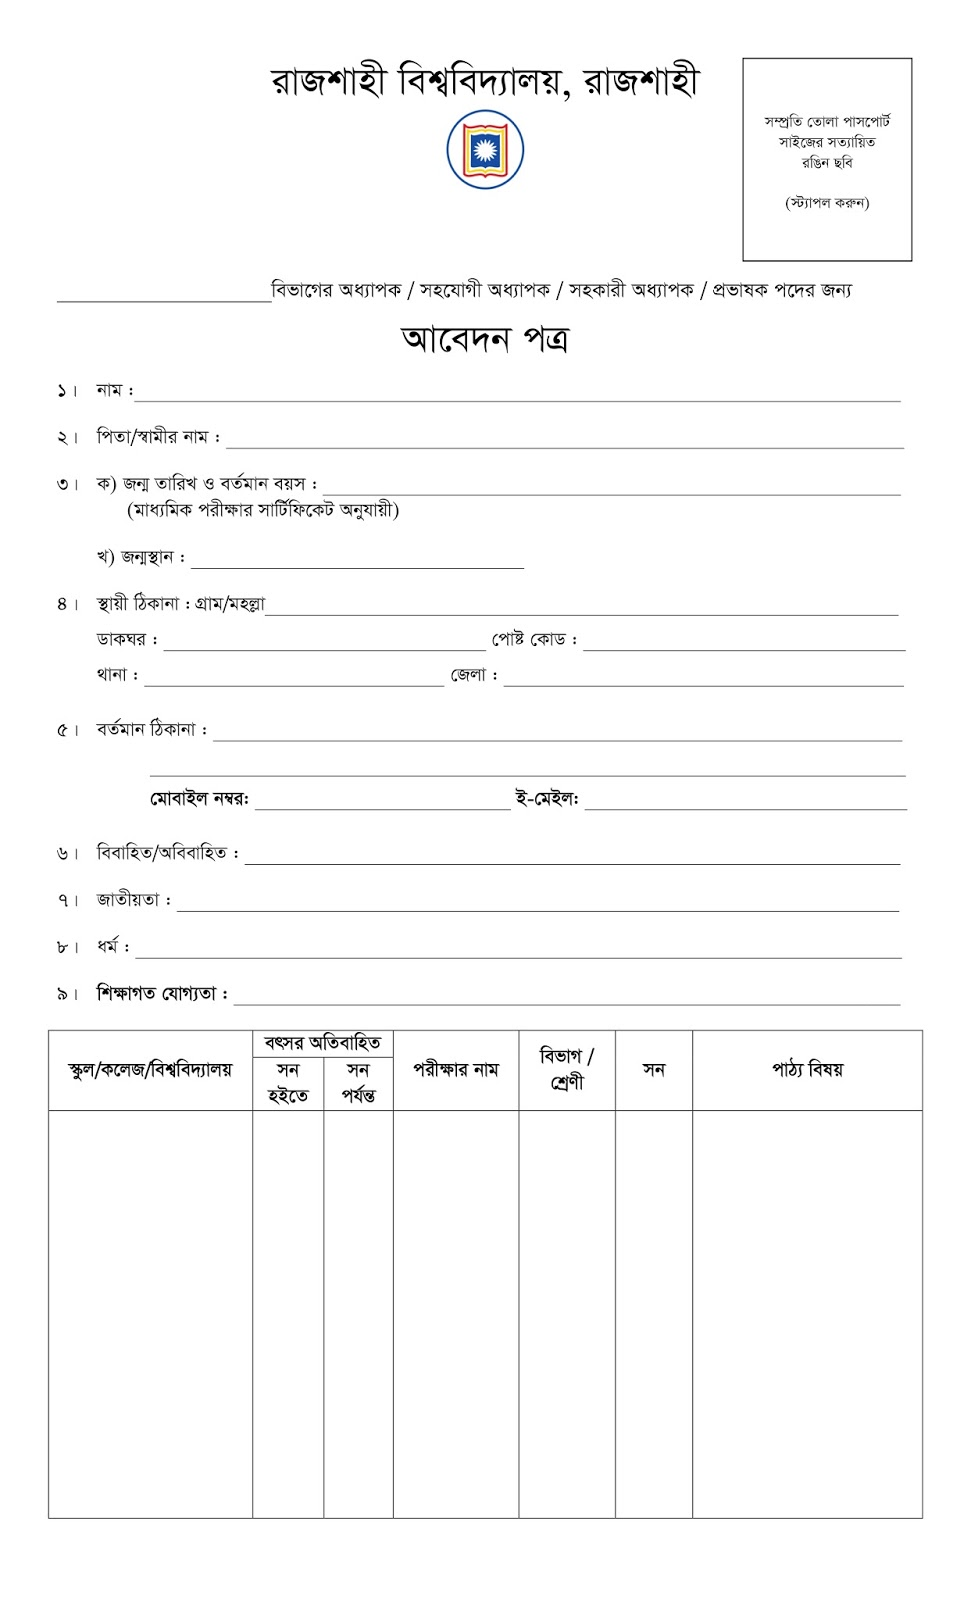 University of Rajshahi (RU) Job Application Form